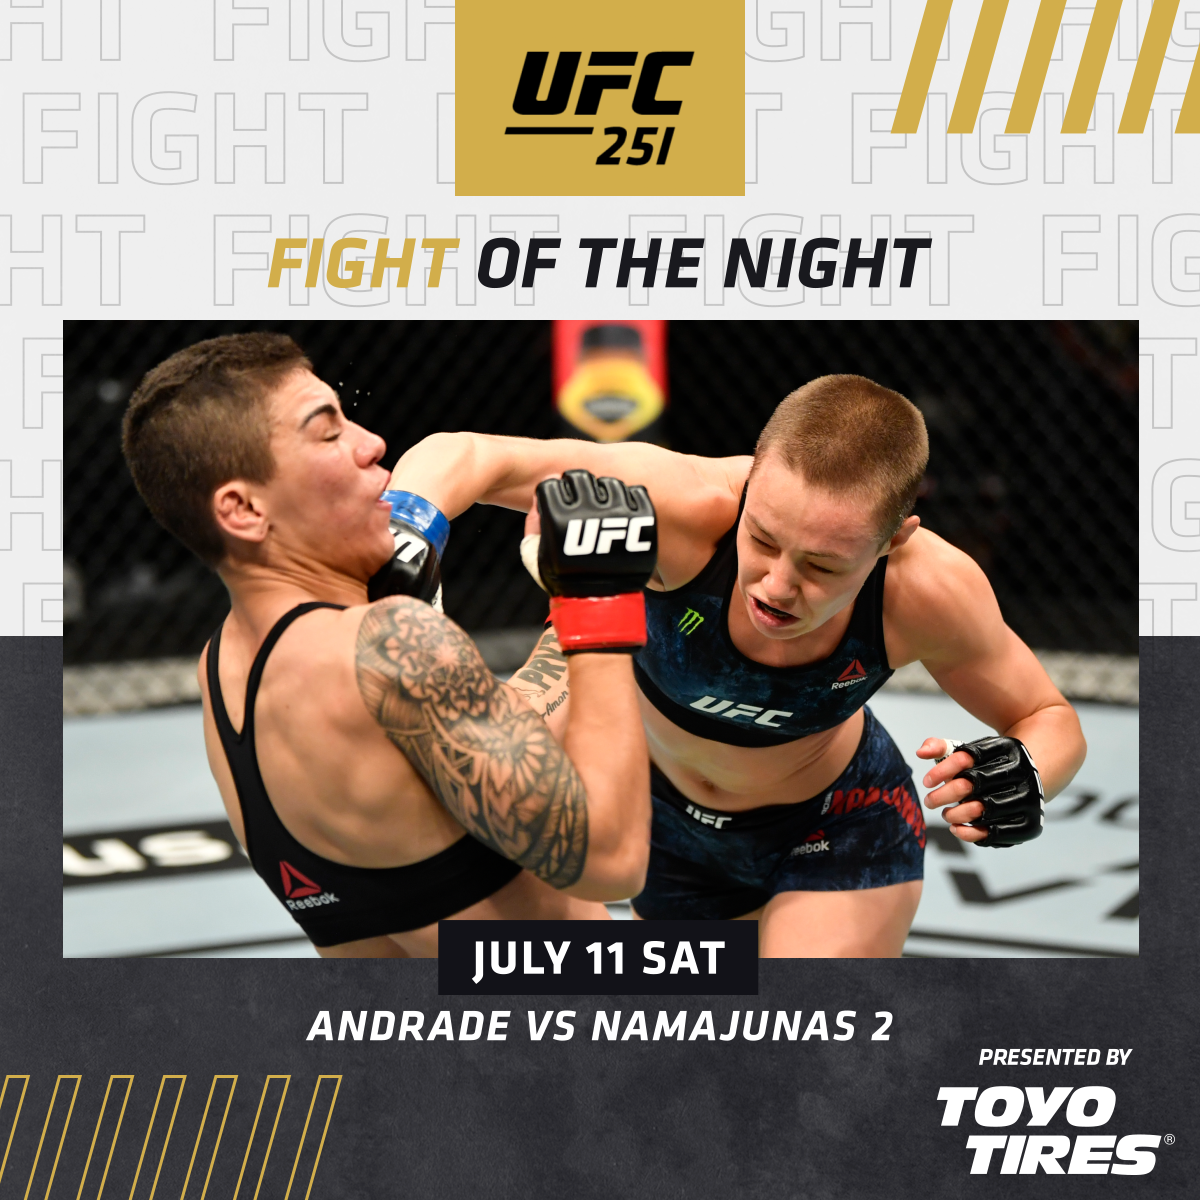 This rematch delivered! 🙌  🌹 @RoseNamajunas 🇧🇷 @JessicaMMApro  [ B2YB @ToyoTires ] #UFC251 | #InAbuDhabi | @VisitAbuDhabi https://t.co/7vEH4Dd4WP